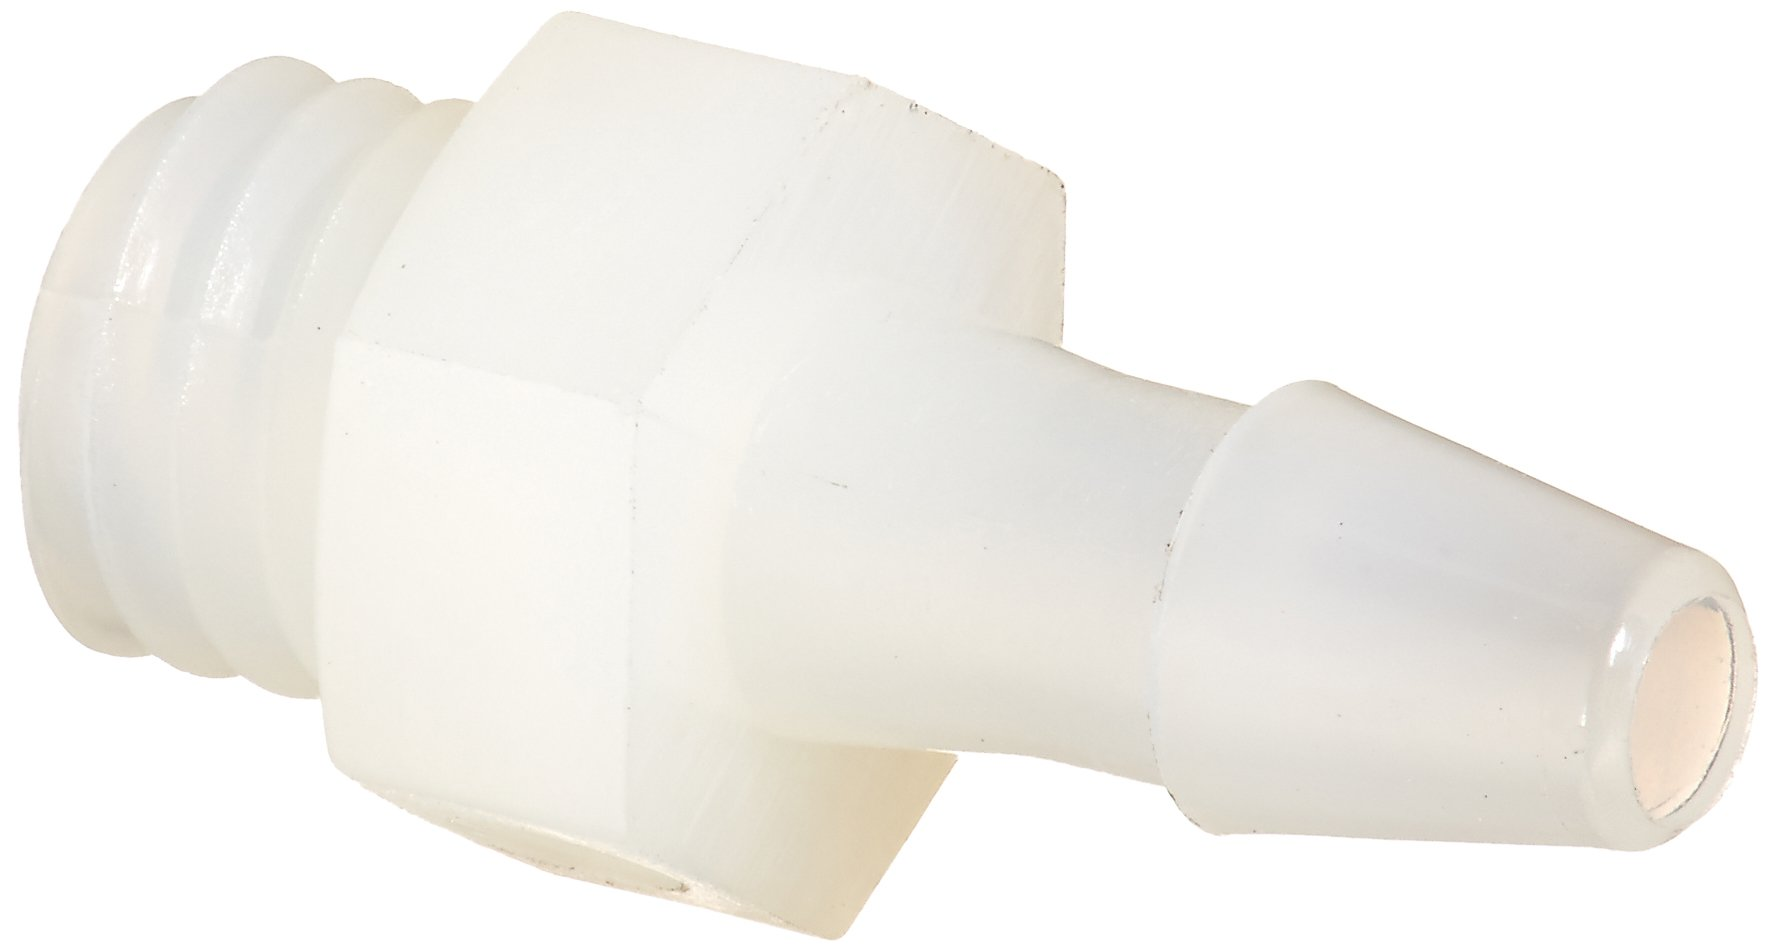 Eldon James A1032-1.5-200NN Natural Nylon Adapter Fitting, 10-32 UNF to 3/32'' Hose Barb (Pack of 10) by Eldon James